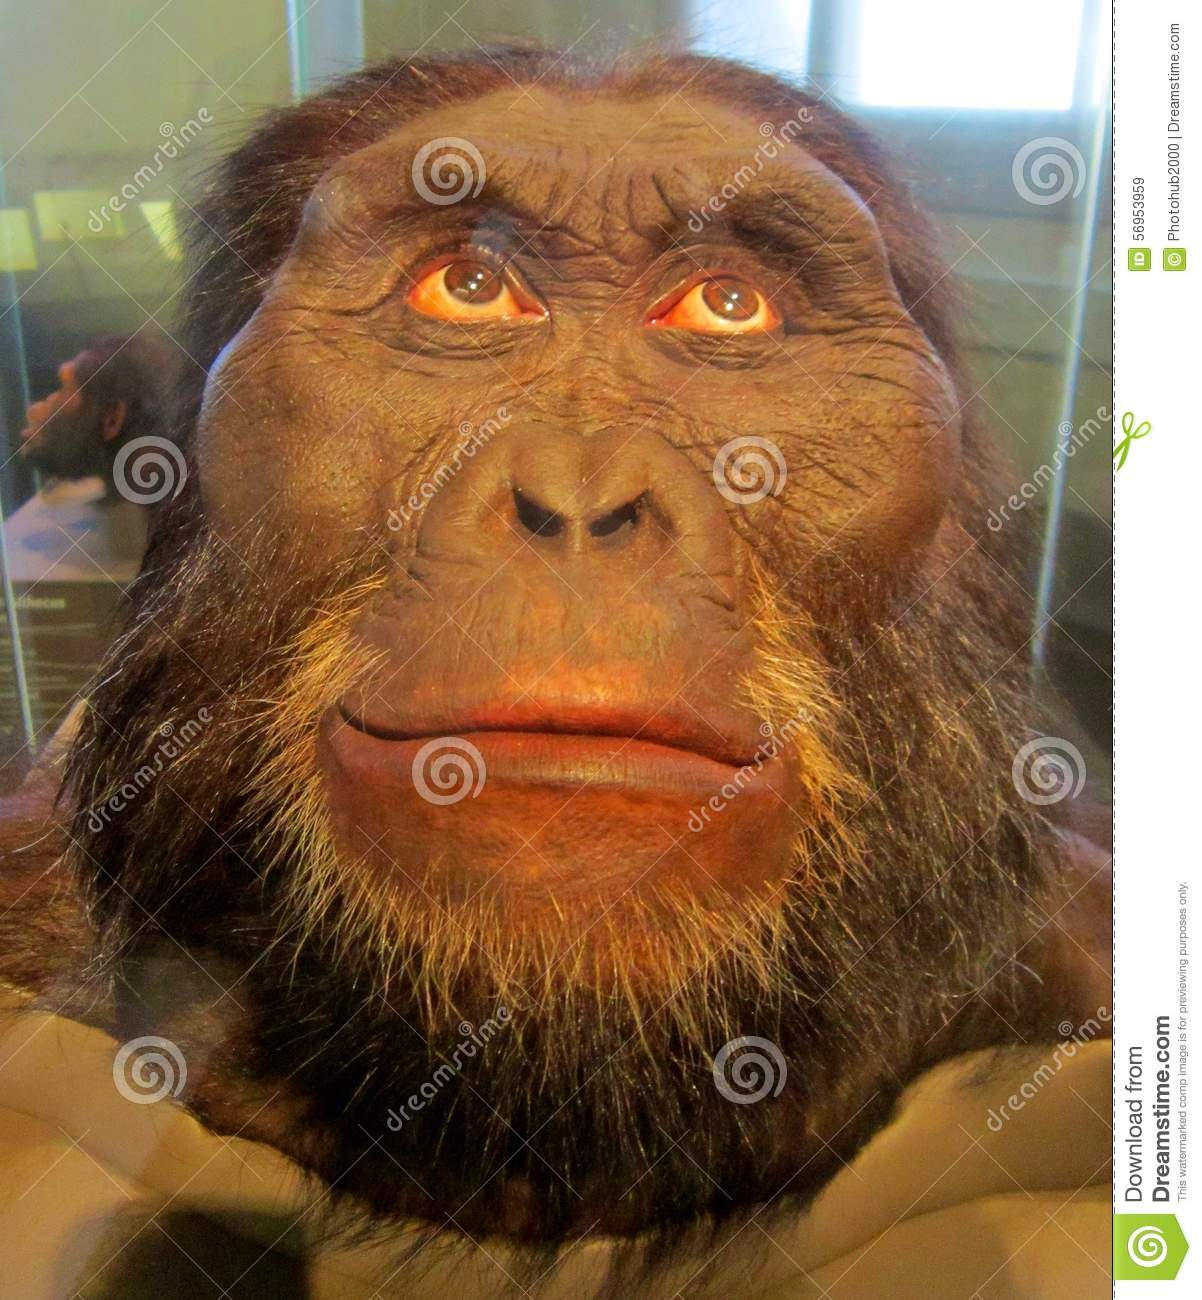 Homosapien Editorial Stock Image - Image: 56953959